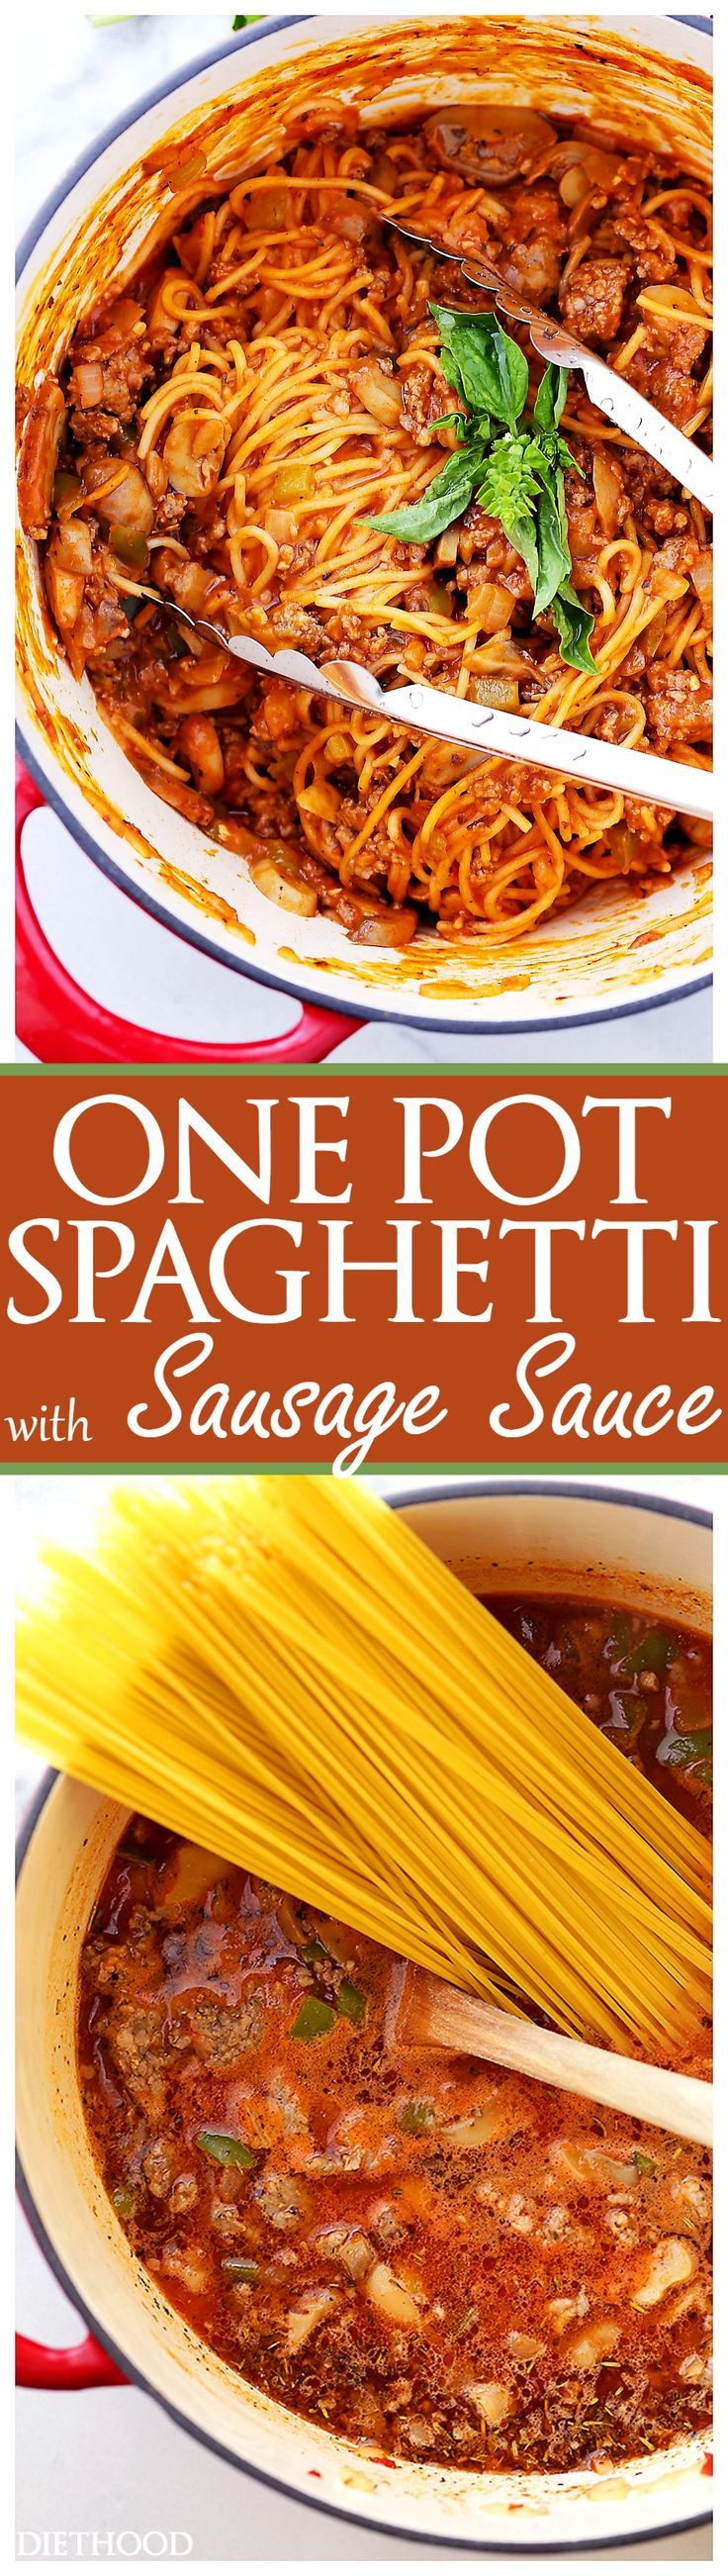 One Pot Spaghetti with Sausage Sauce Recipe - Made with pork sausage, peppers, mushrooms and pasta, this easy, one pot dinner recipe is on the table in just 30 minutes!  #ad #JDFAMILYTABLE